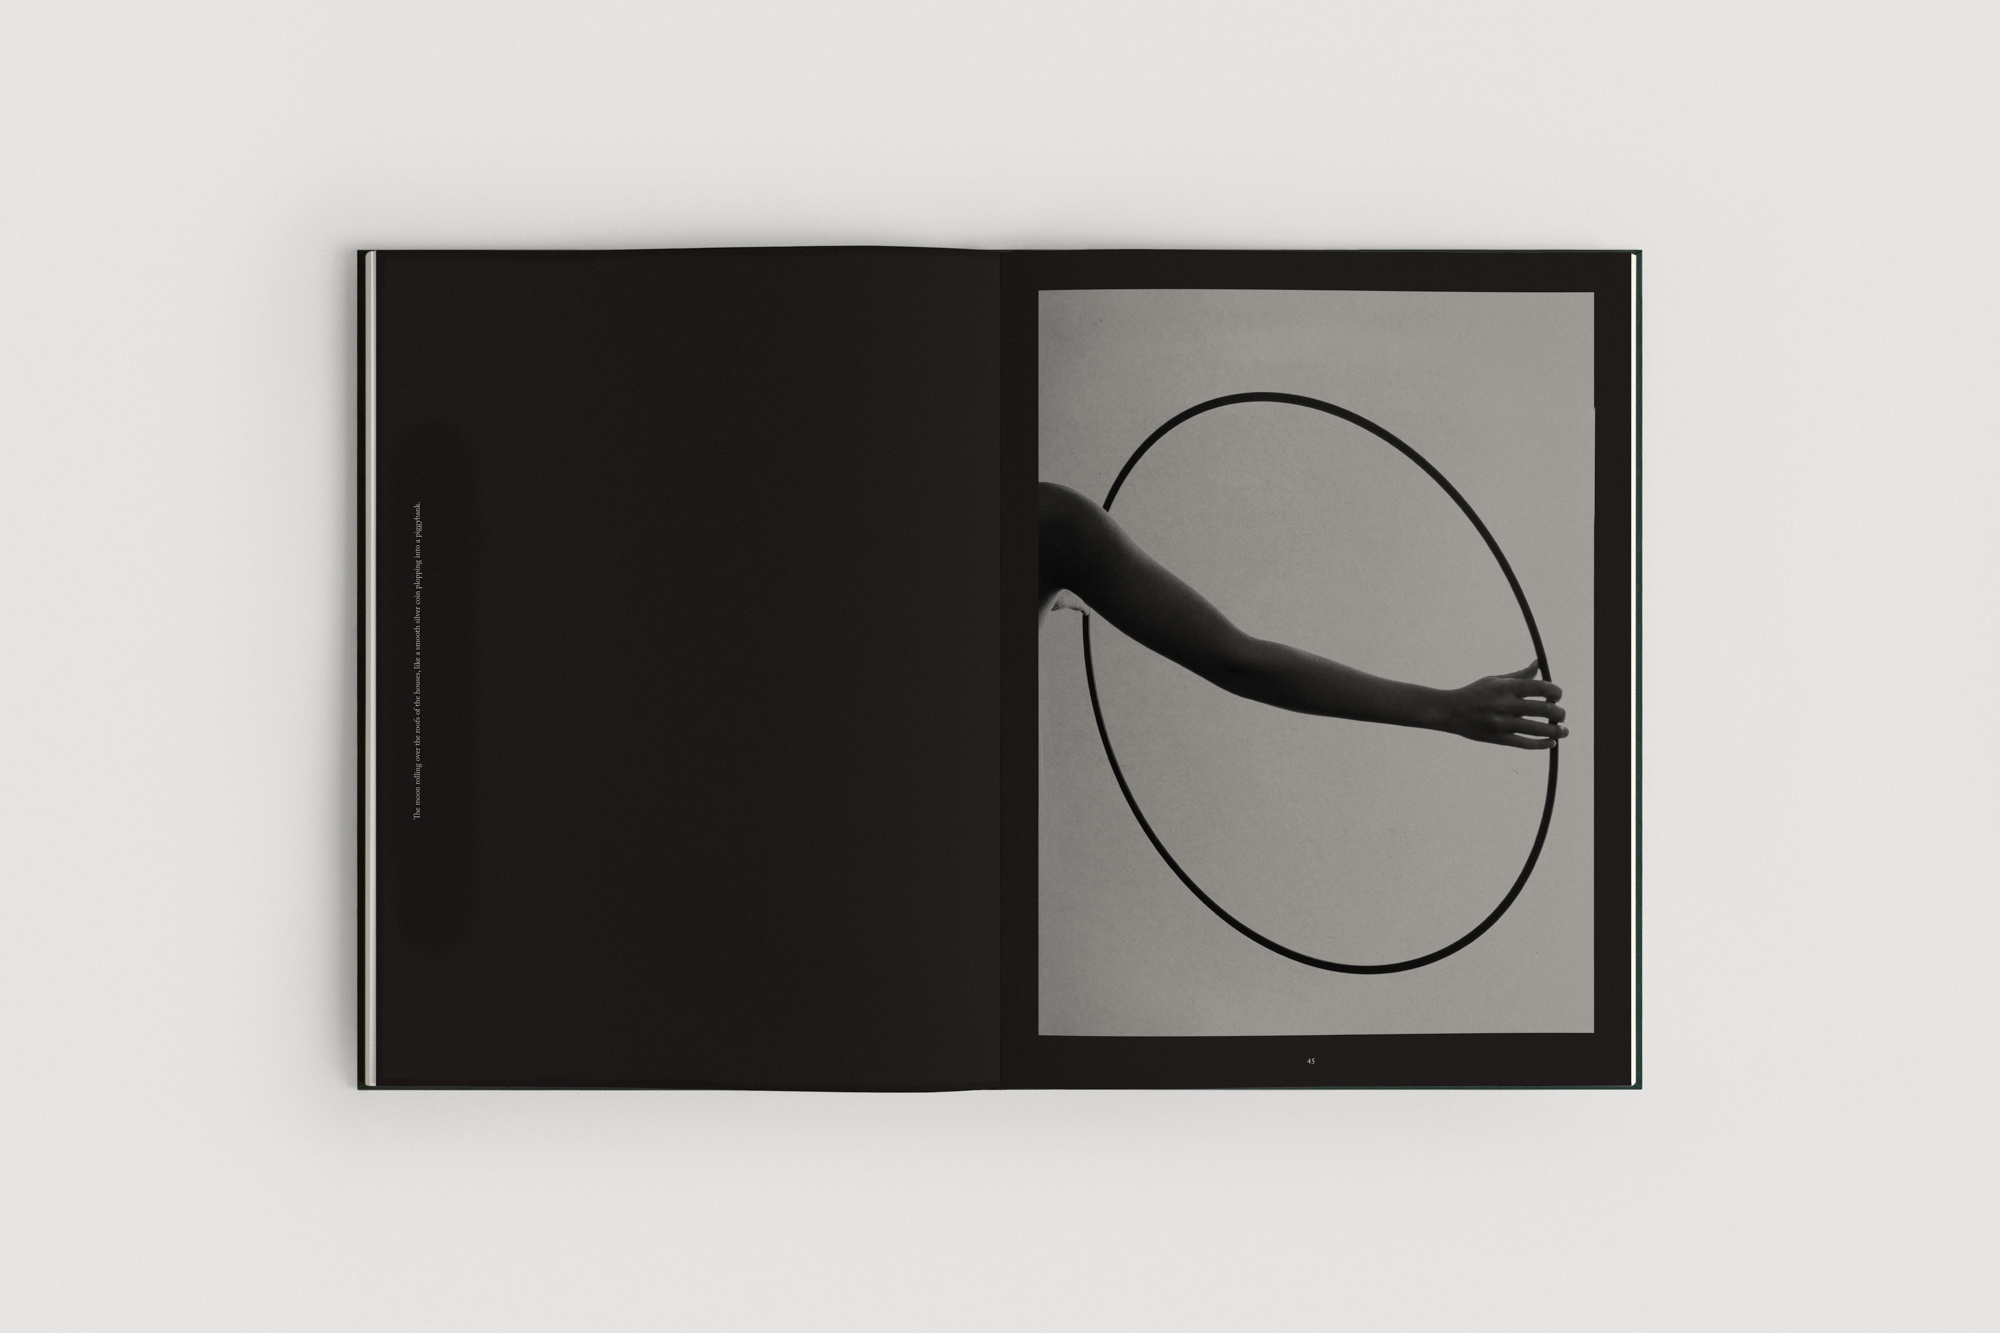 Jonas-Bjerre-Poulsen-The-Reinvention-of-Forms-Book-Packshots-Web-13